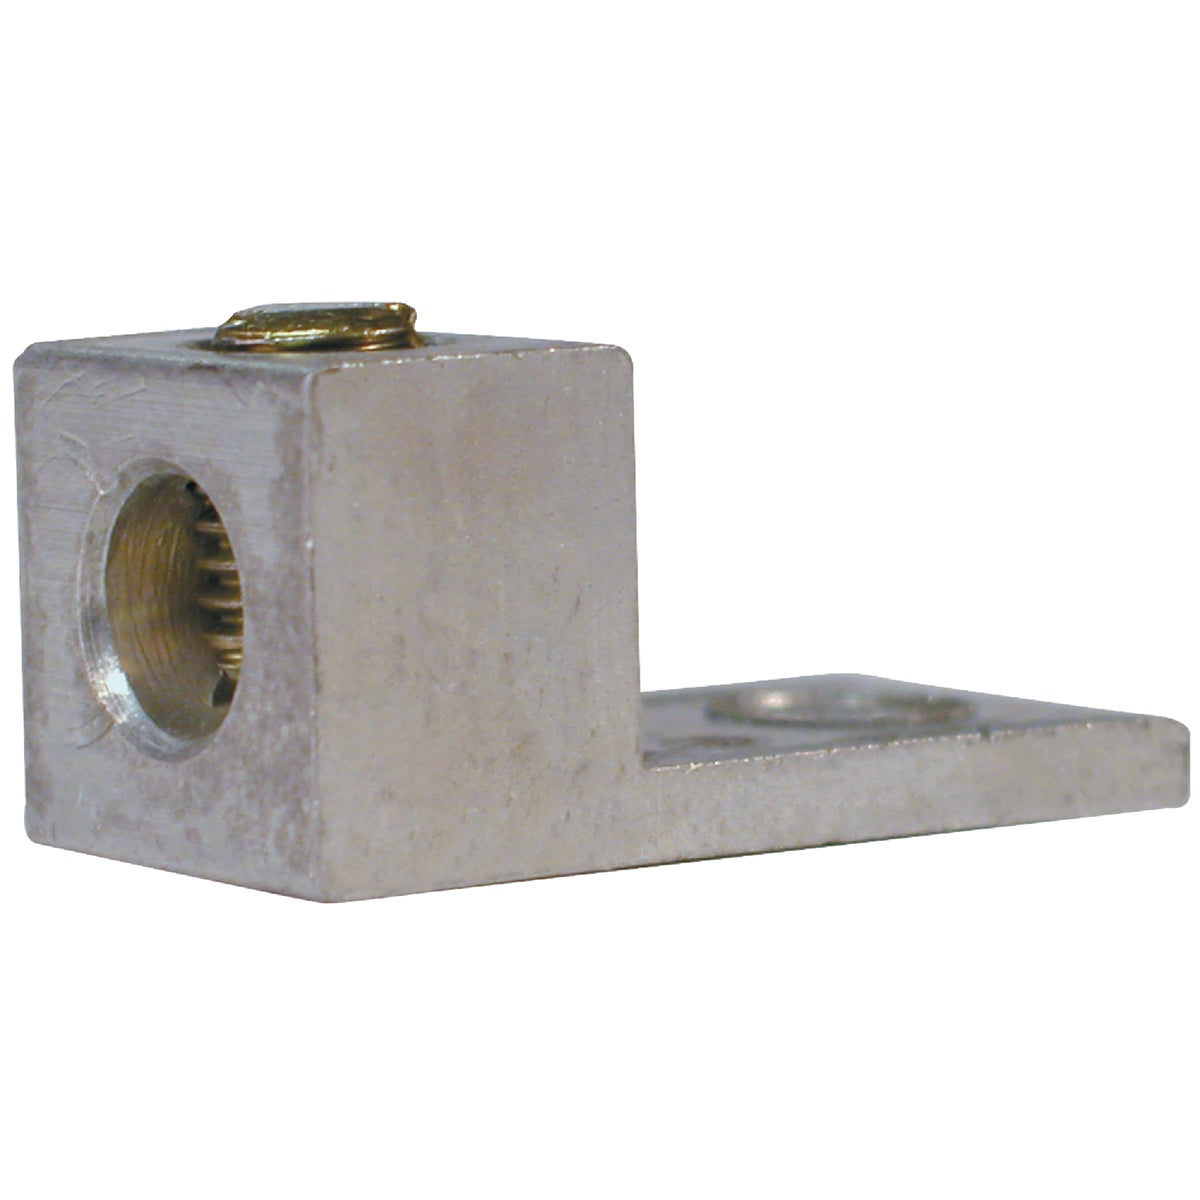 250-6 MECHANICAL LUG - GTA-2/0 by G B Electrical Inc